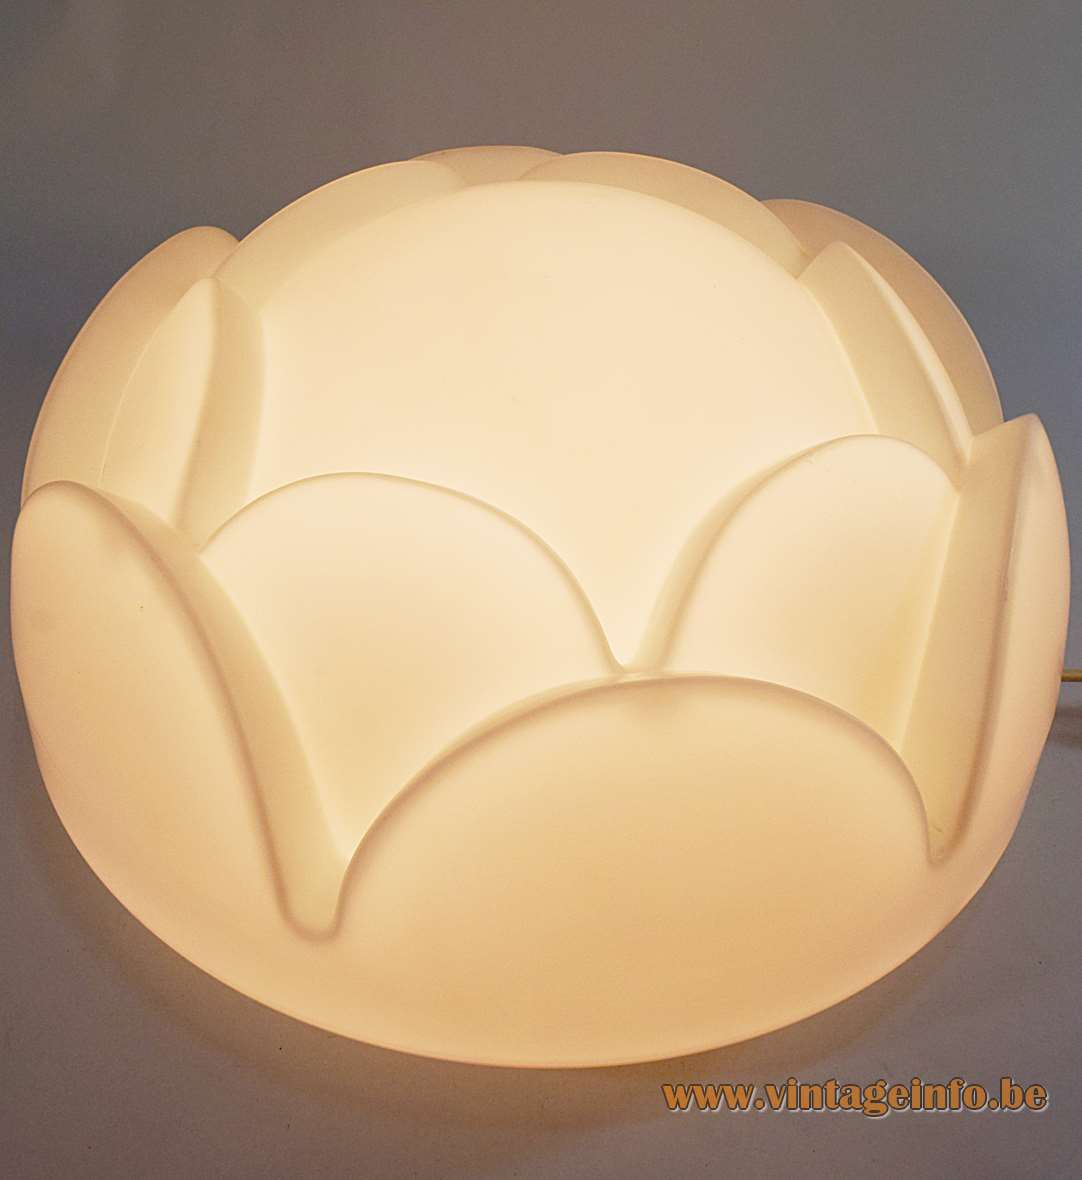 Peill + Putzler artichoke flush mount wall lamp round white opal frosted glass flower lampshade 1970s Germany